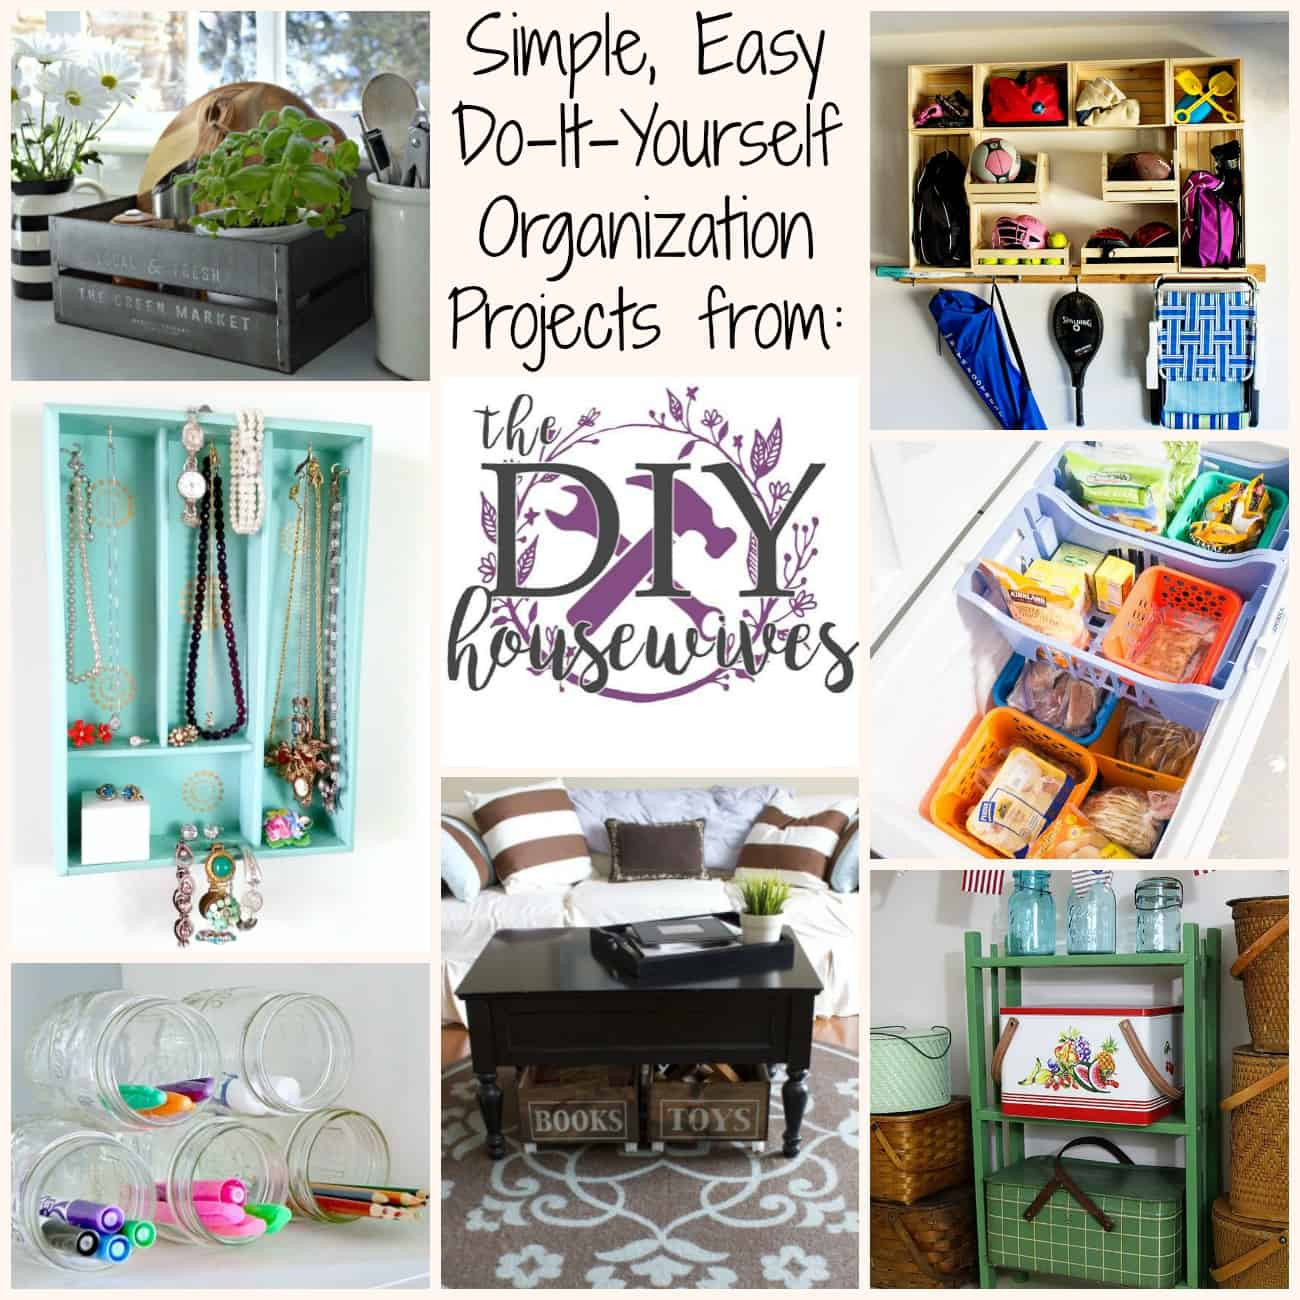 Best ideas about DIY Organization Projects . Save or Pin Storage Organization Projects and Tutorials from The DIY Now.